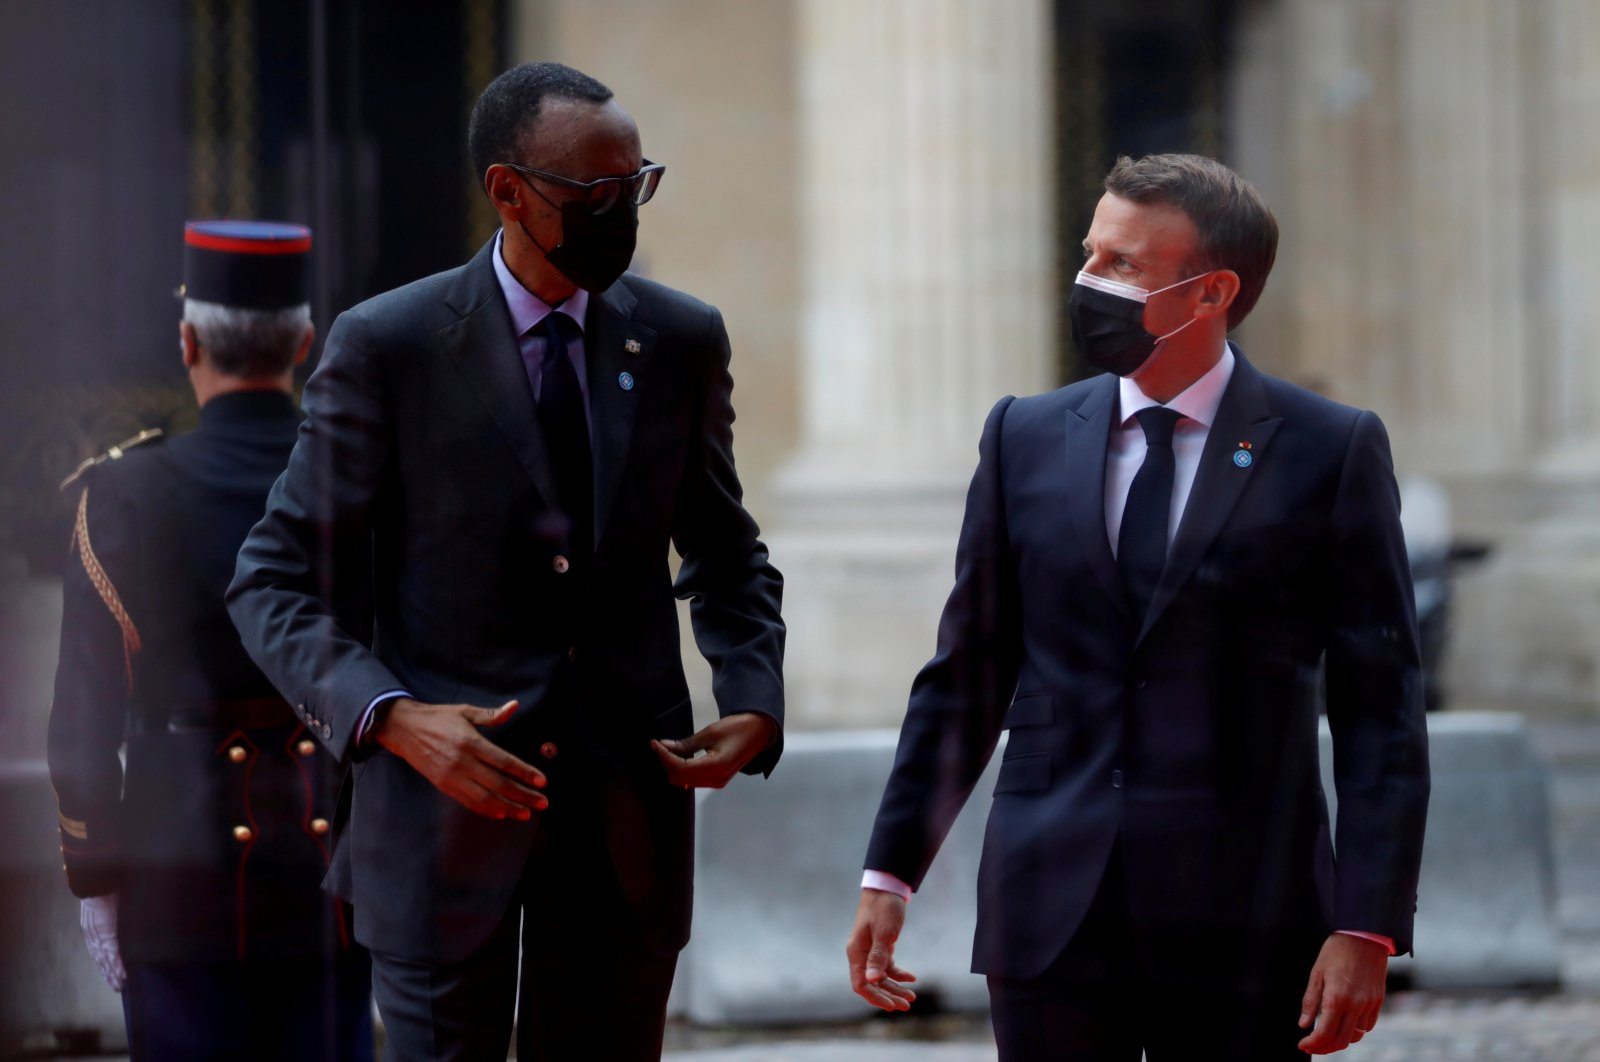 French President Emmanuel Macron welcomes Rwanda's President Paul Kagame as he arrives to attend the International Conference in support of Sudan at the Temporary Grand Palais in Paris, France, May 17, 2021. (Reuters Photo)